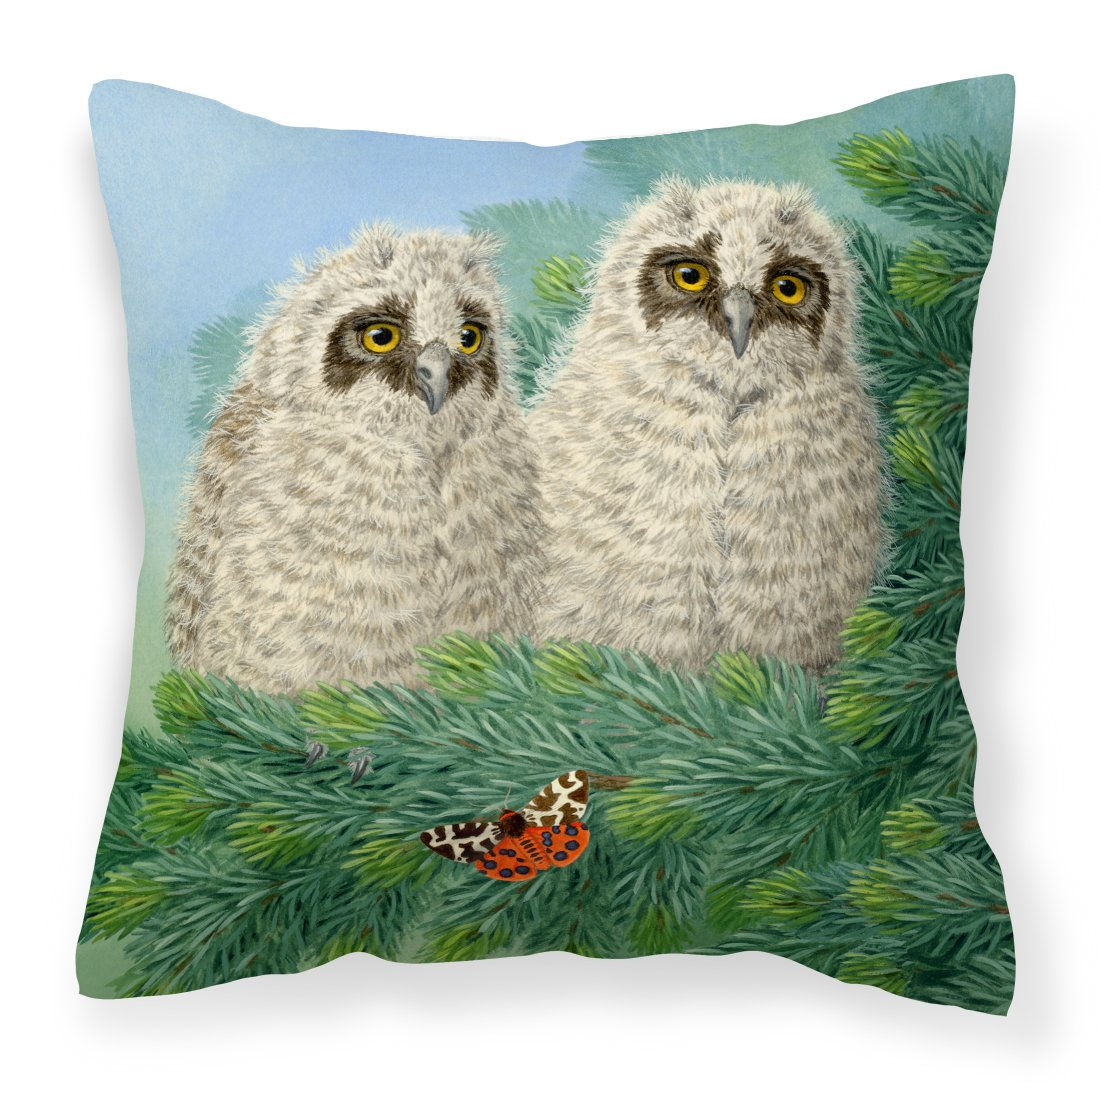 Owlets and Butterfly by Sarah Adams Canvas Decorative Pillow by Caroline's Treasures